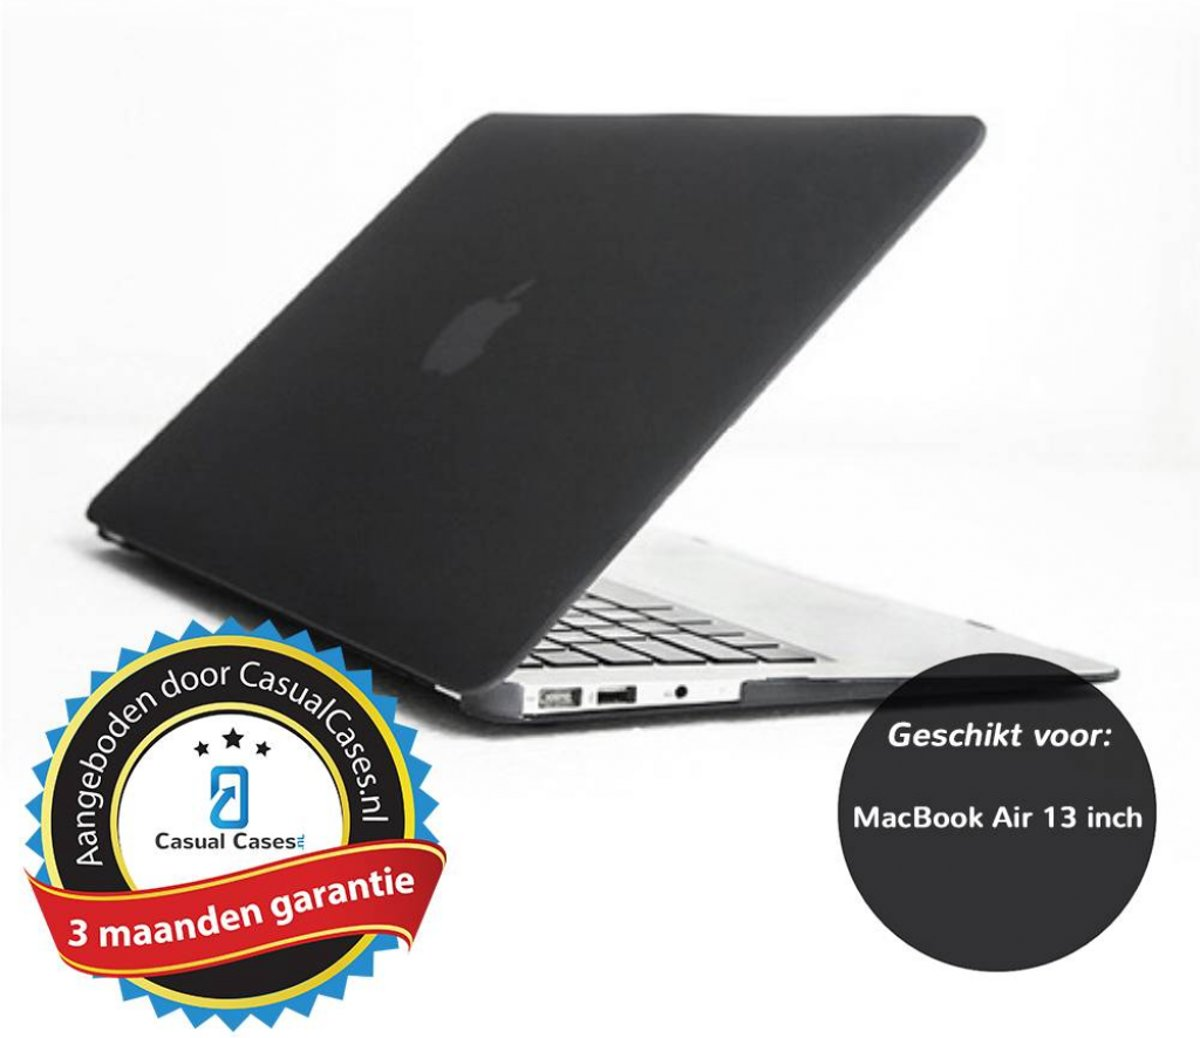 Glanzende hardcase hoes MacBook Air 13 inch zwart